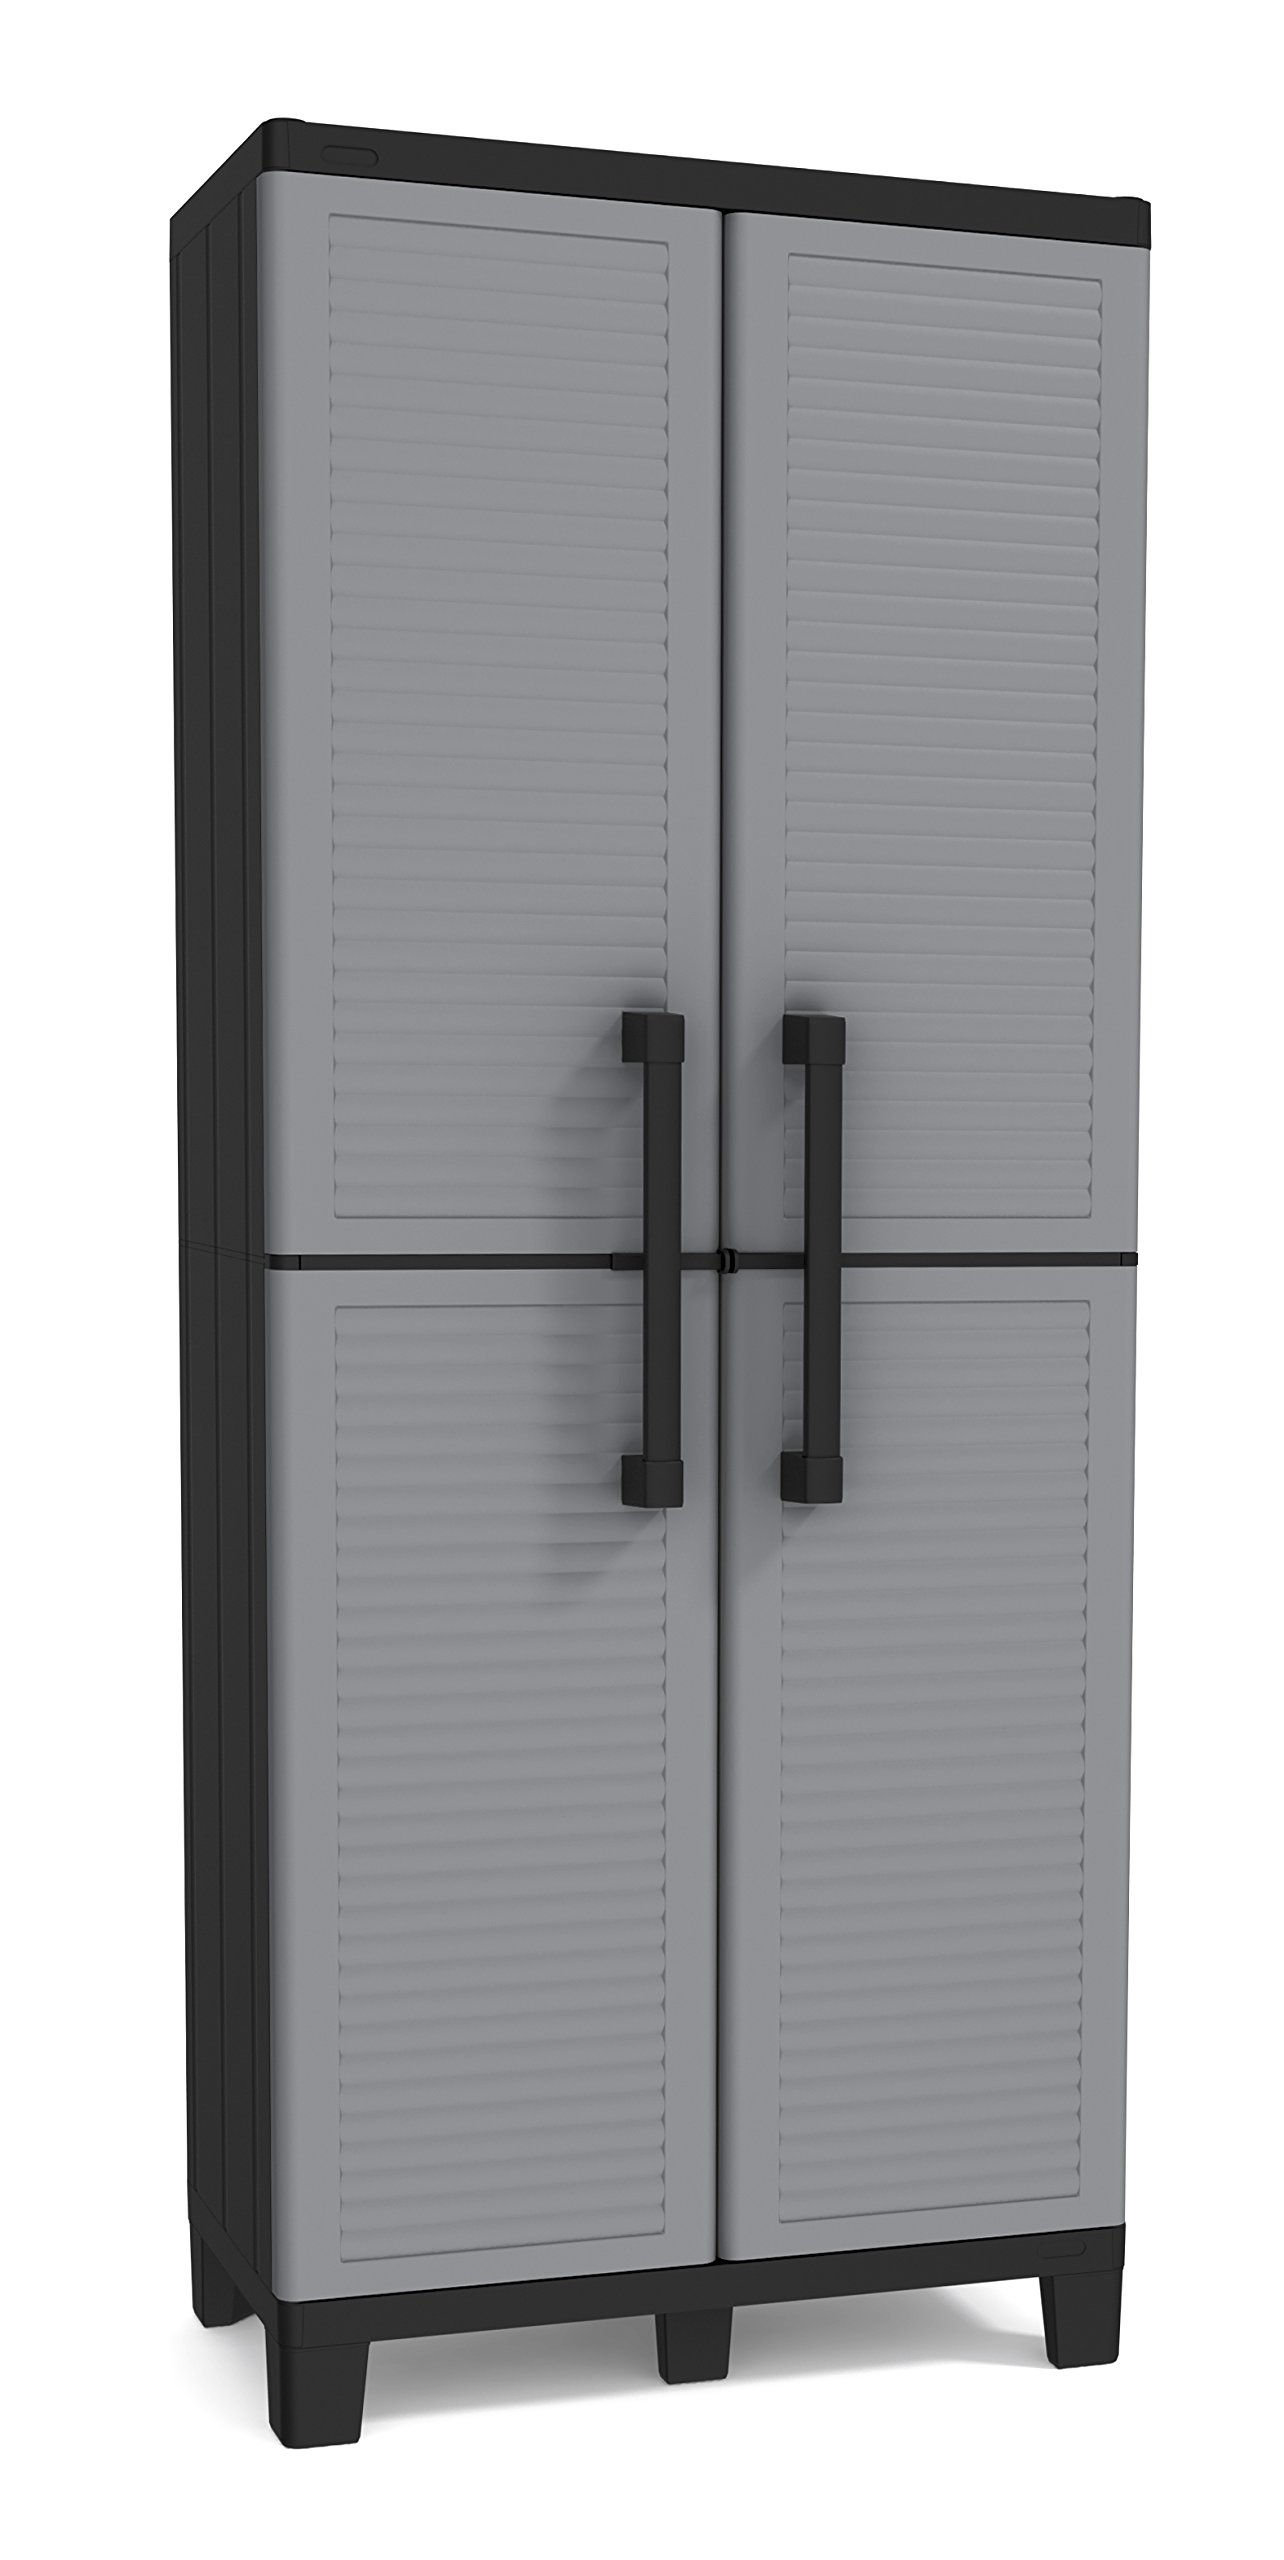 Keter Space Winner, 5.6'' Tall Utility Cabinet, Gray by Keter